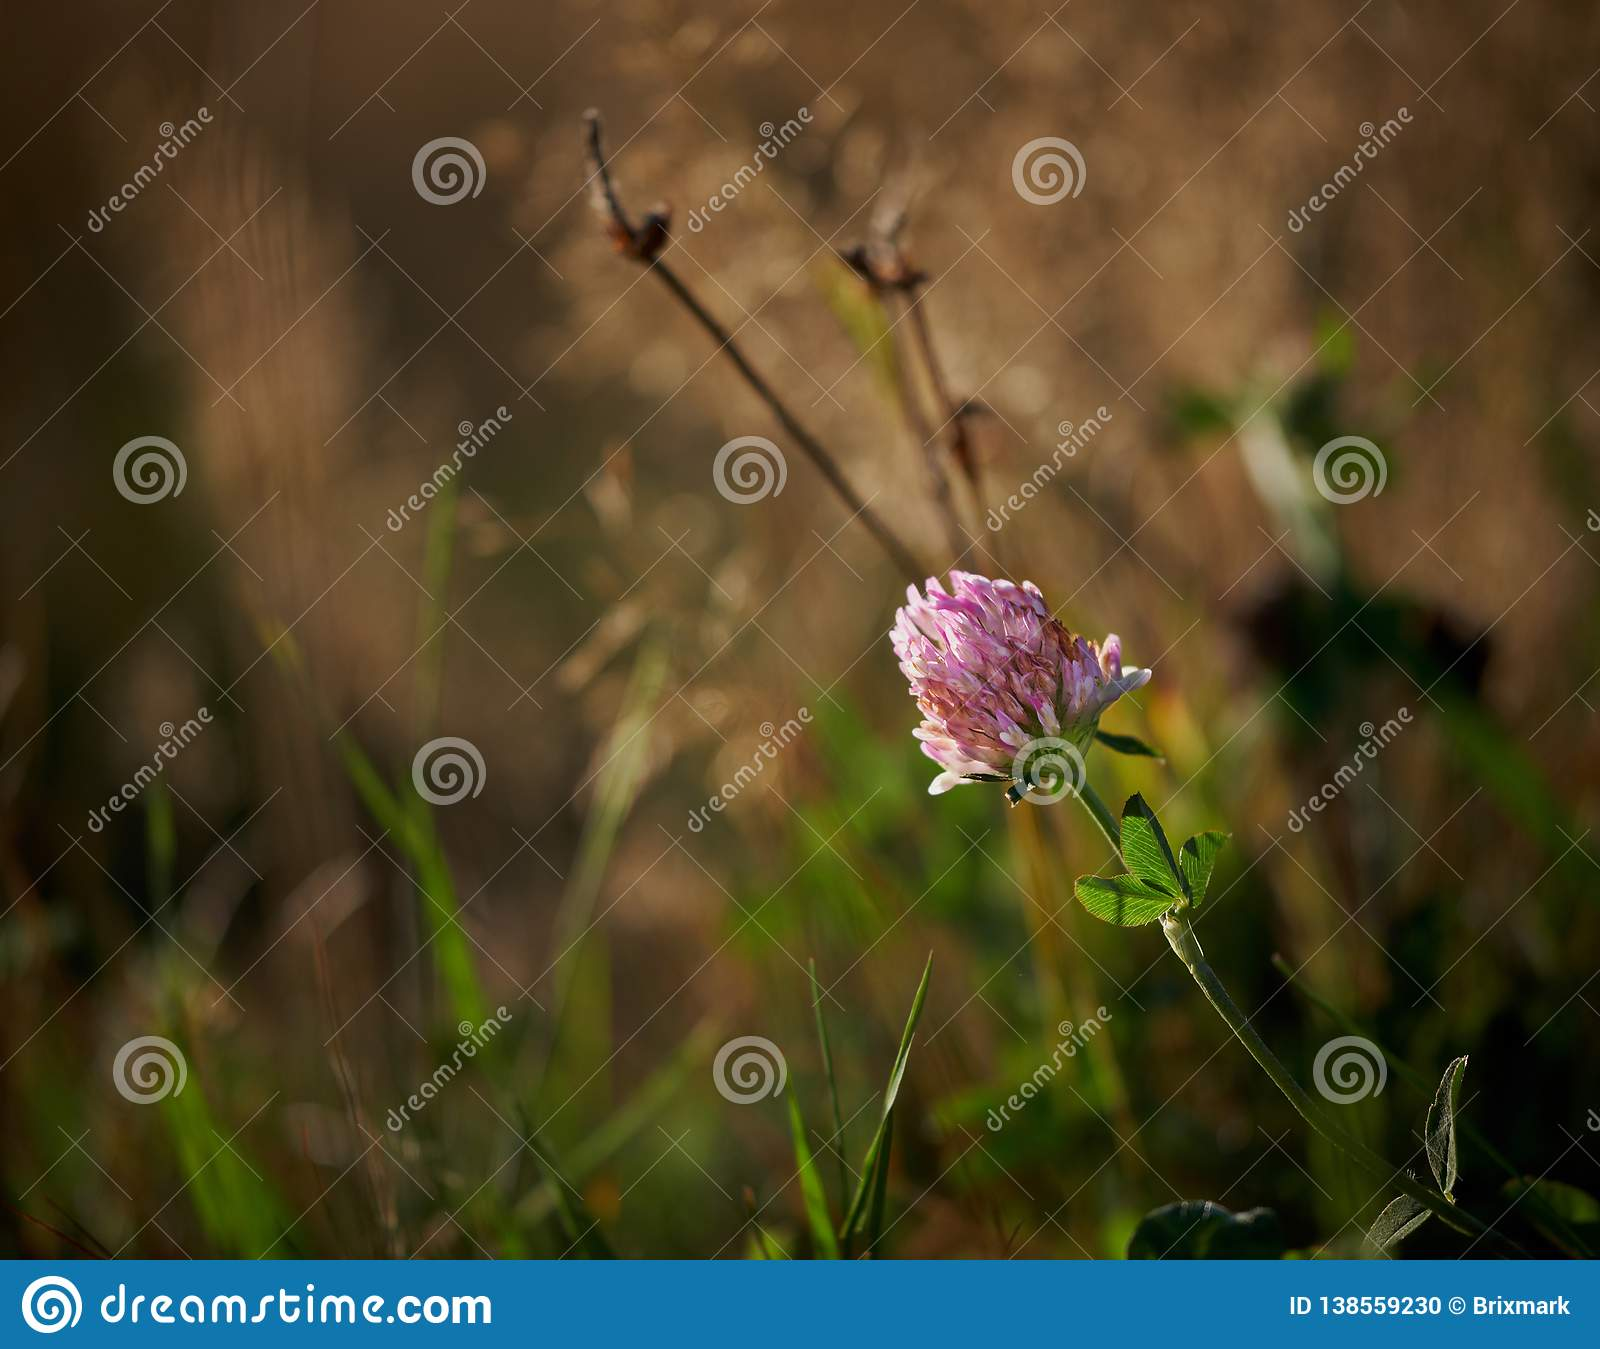 Large pink clover flower tilting